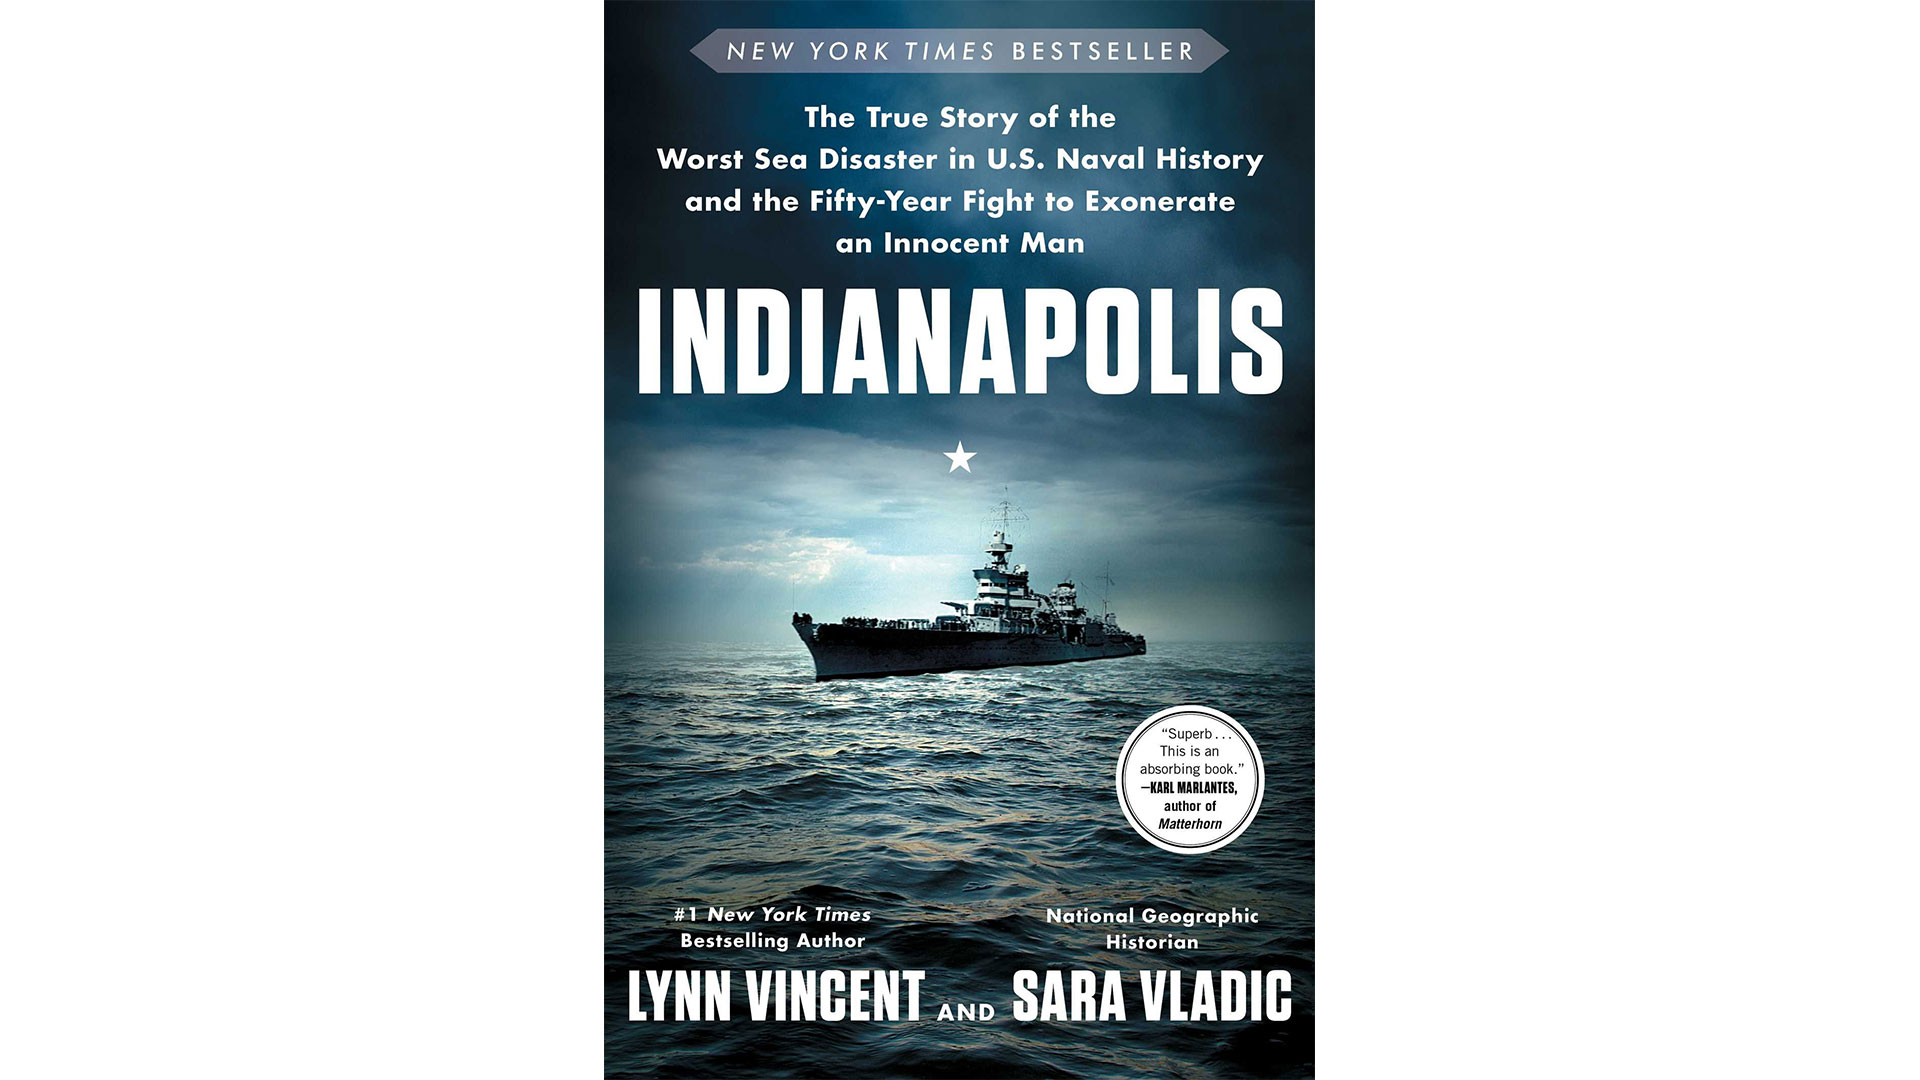 Amazon Best Books 2018 Indianapolis